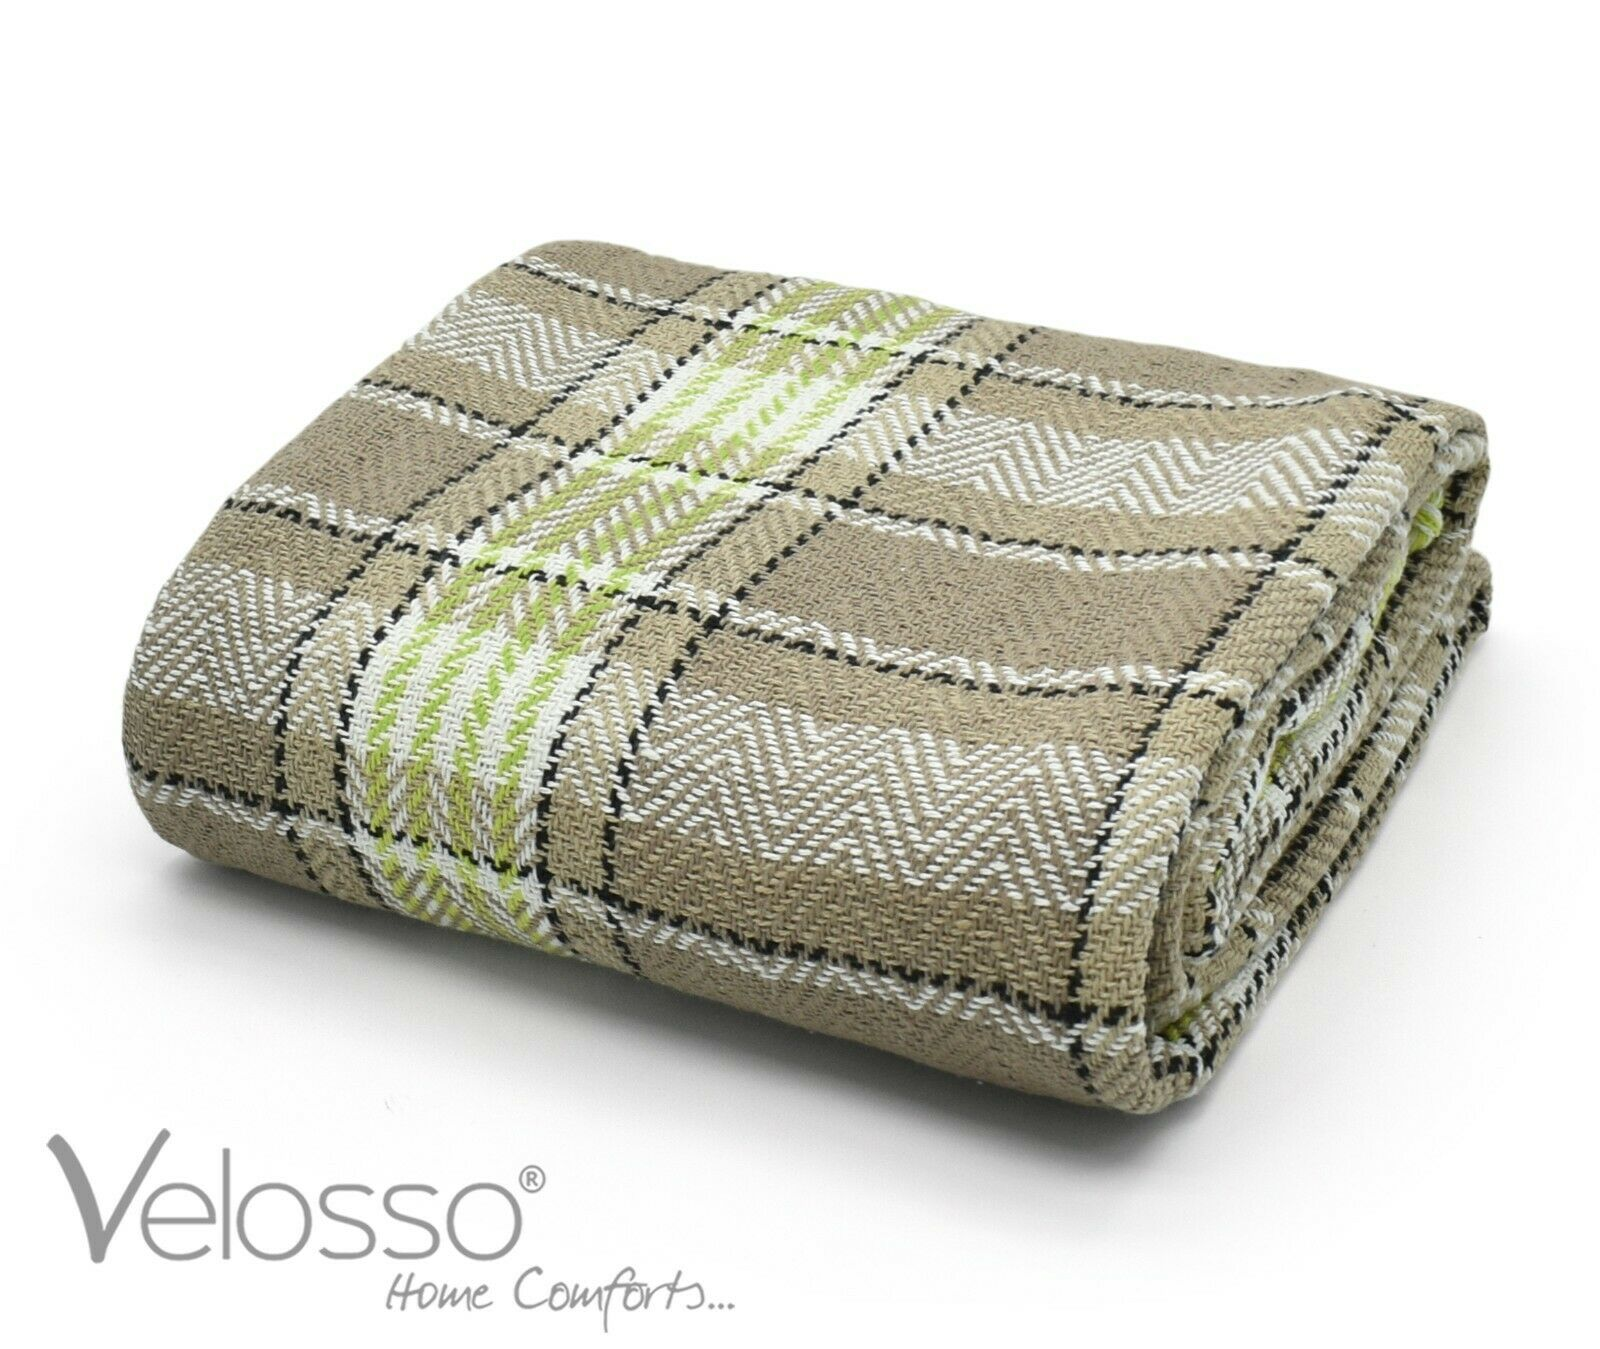 100 Cotton Throw Luxury Bourbon Tartan Check Highlands Sofa Bed Throwover Natural Lime